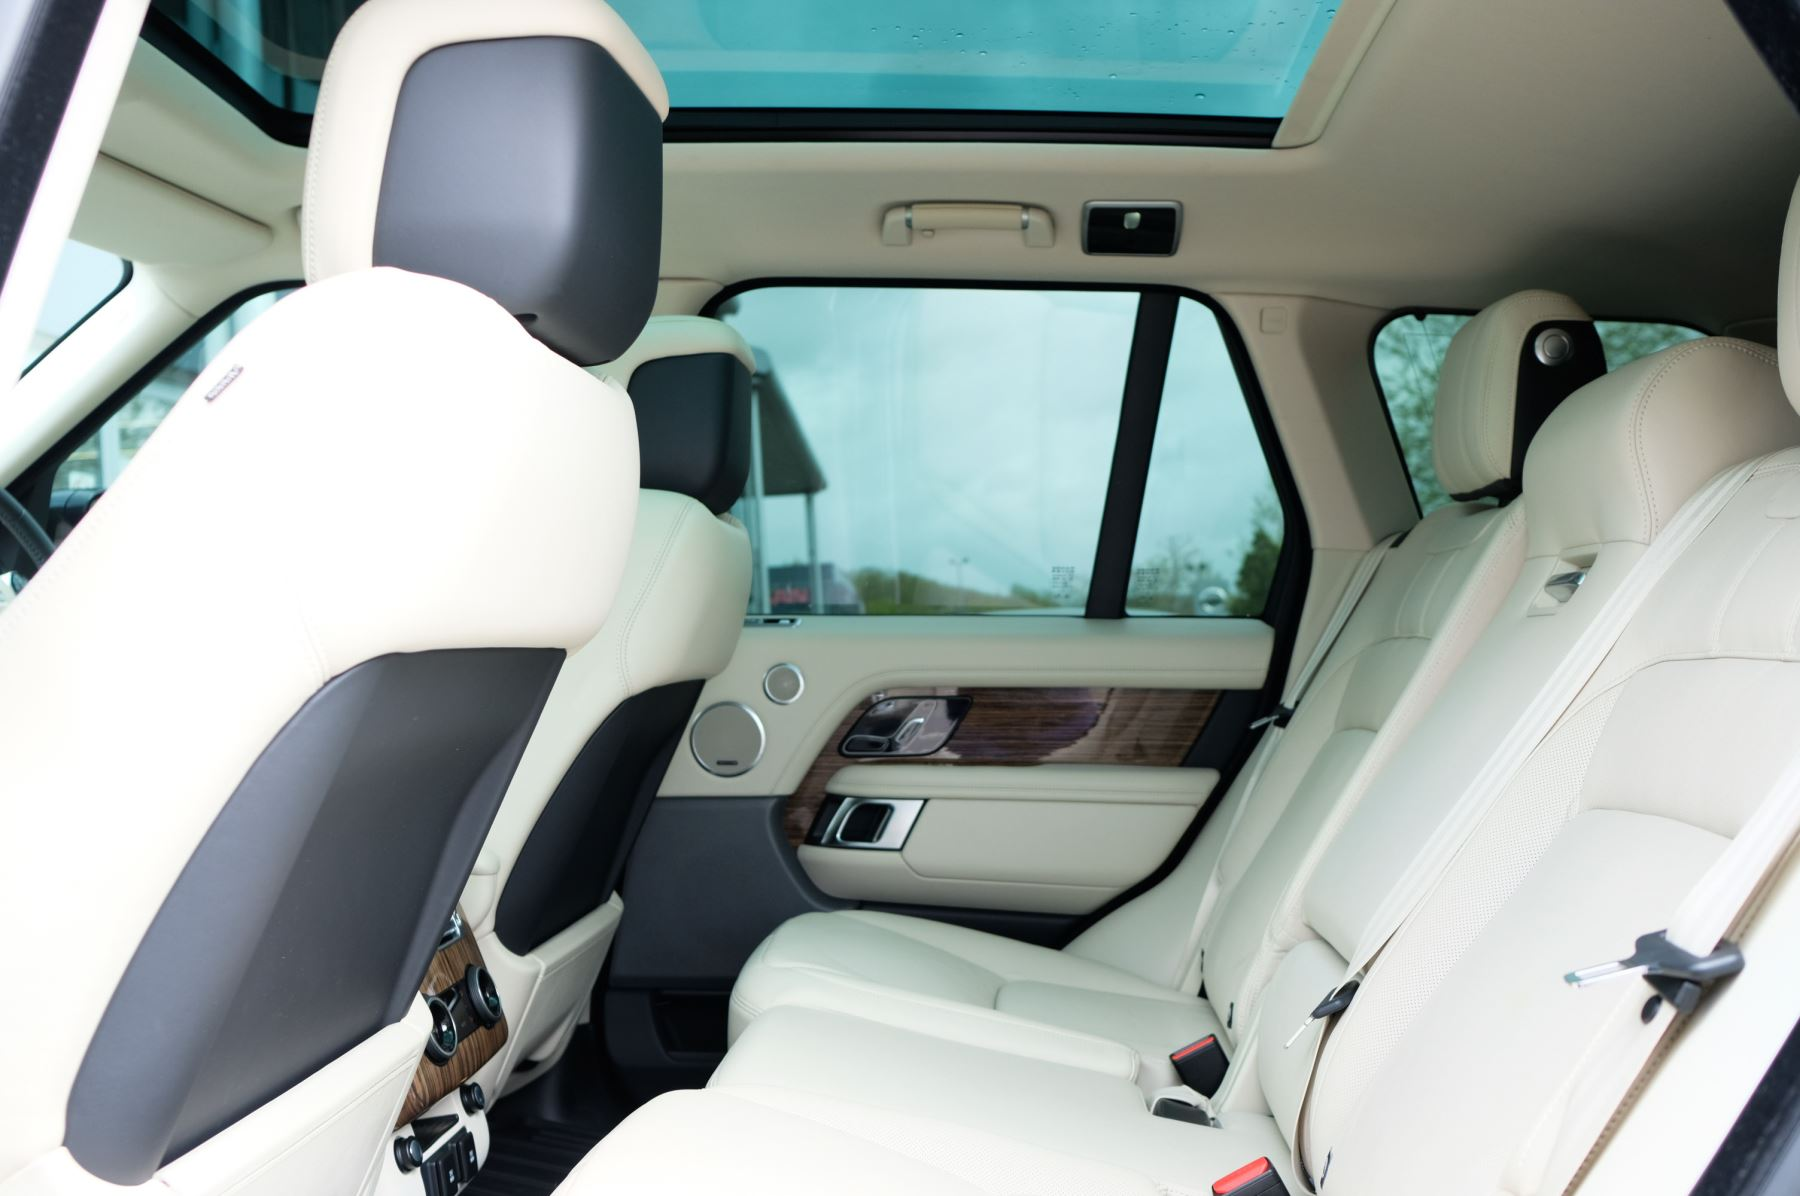 Land Rover Range Rover 3.0 SDV6 Vogue SE - Panoramic Roof - Privacy Glass - 21 inch Alloys image 16